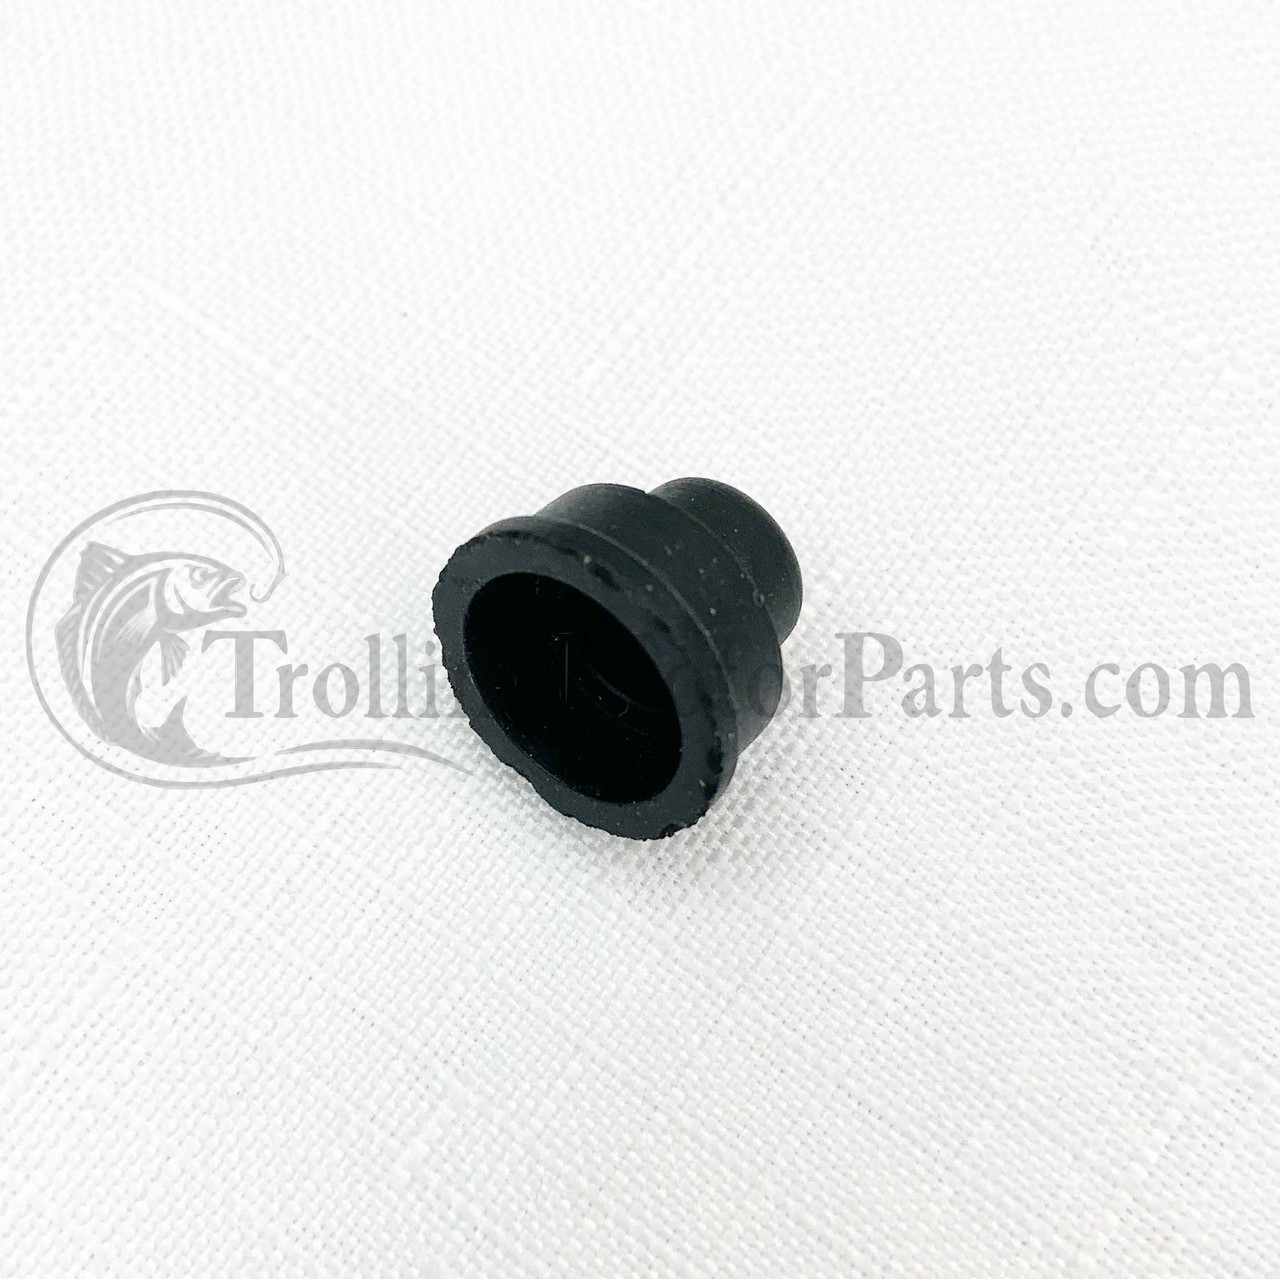 MotorGuide microswitch with rubber boot for trolling motor